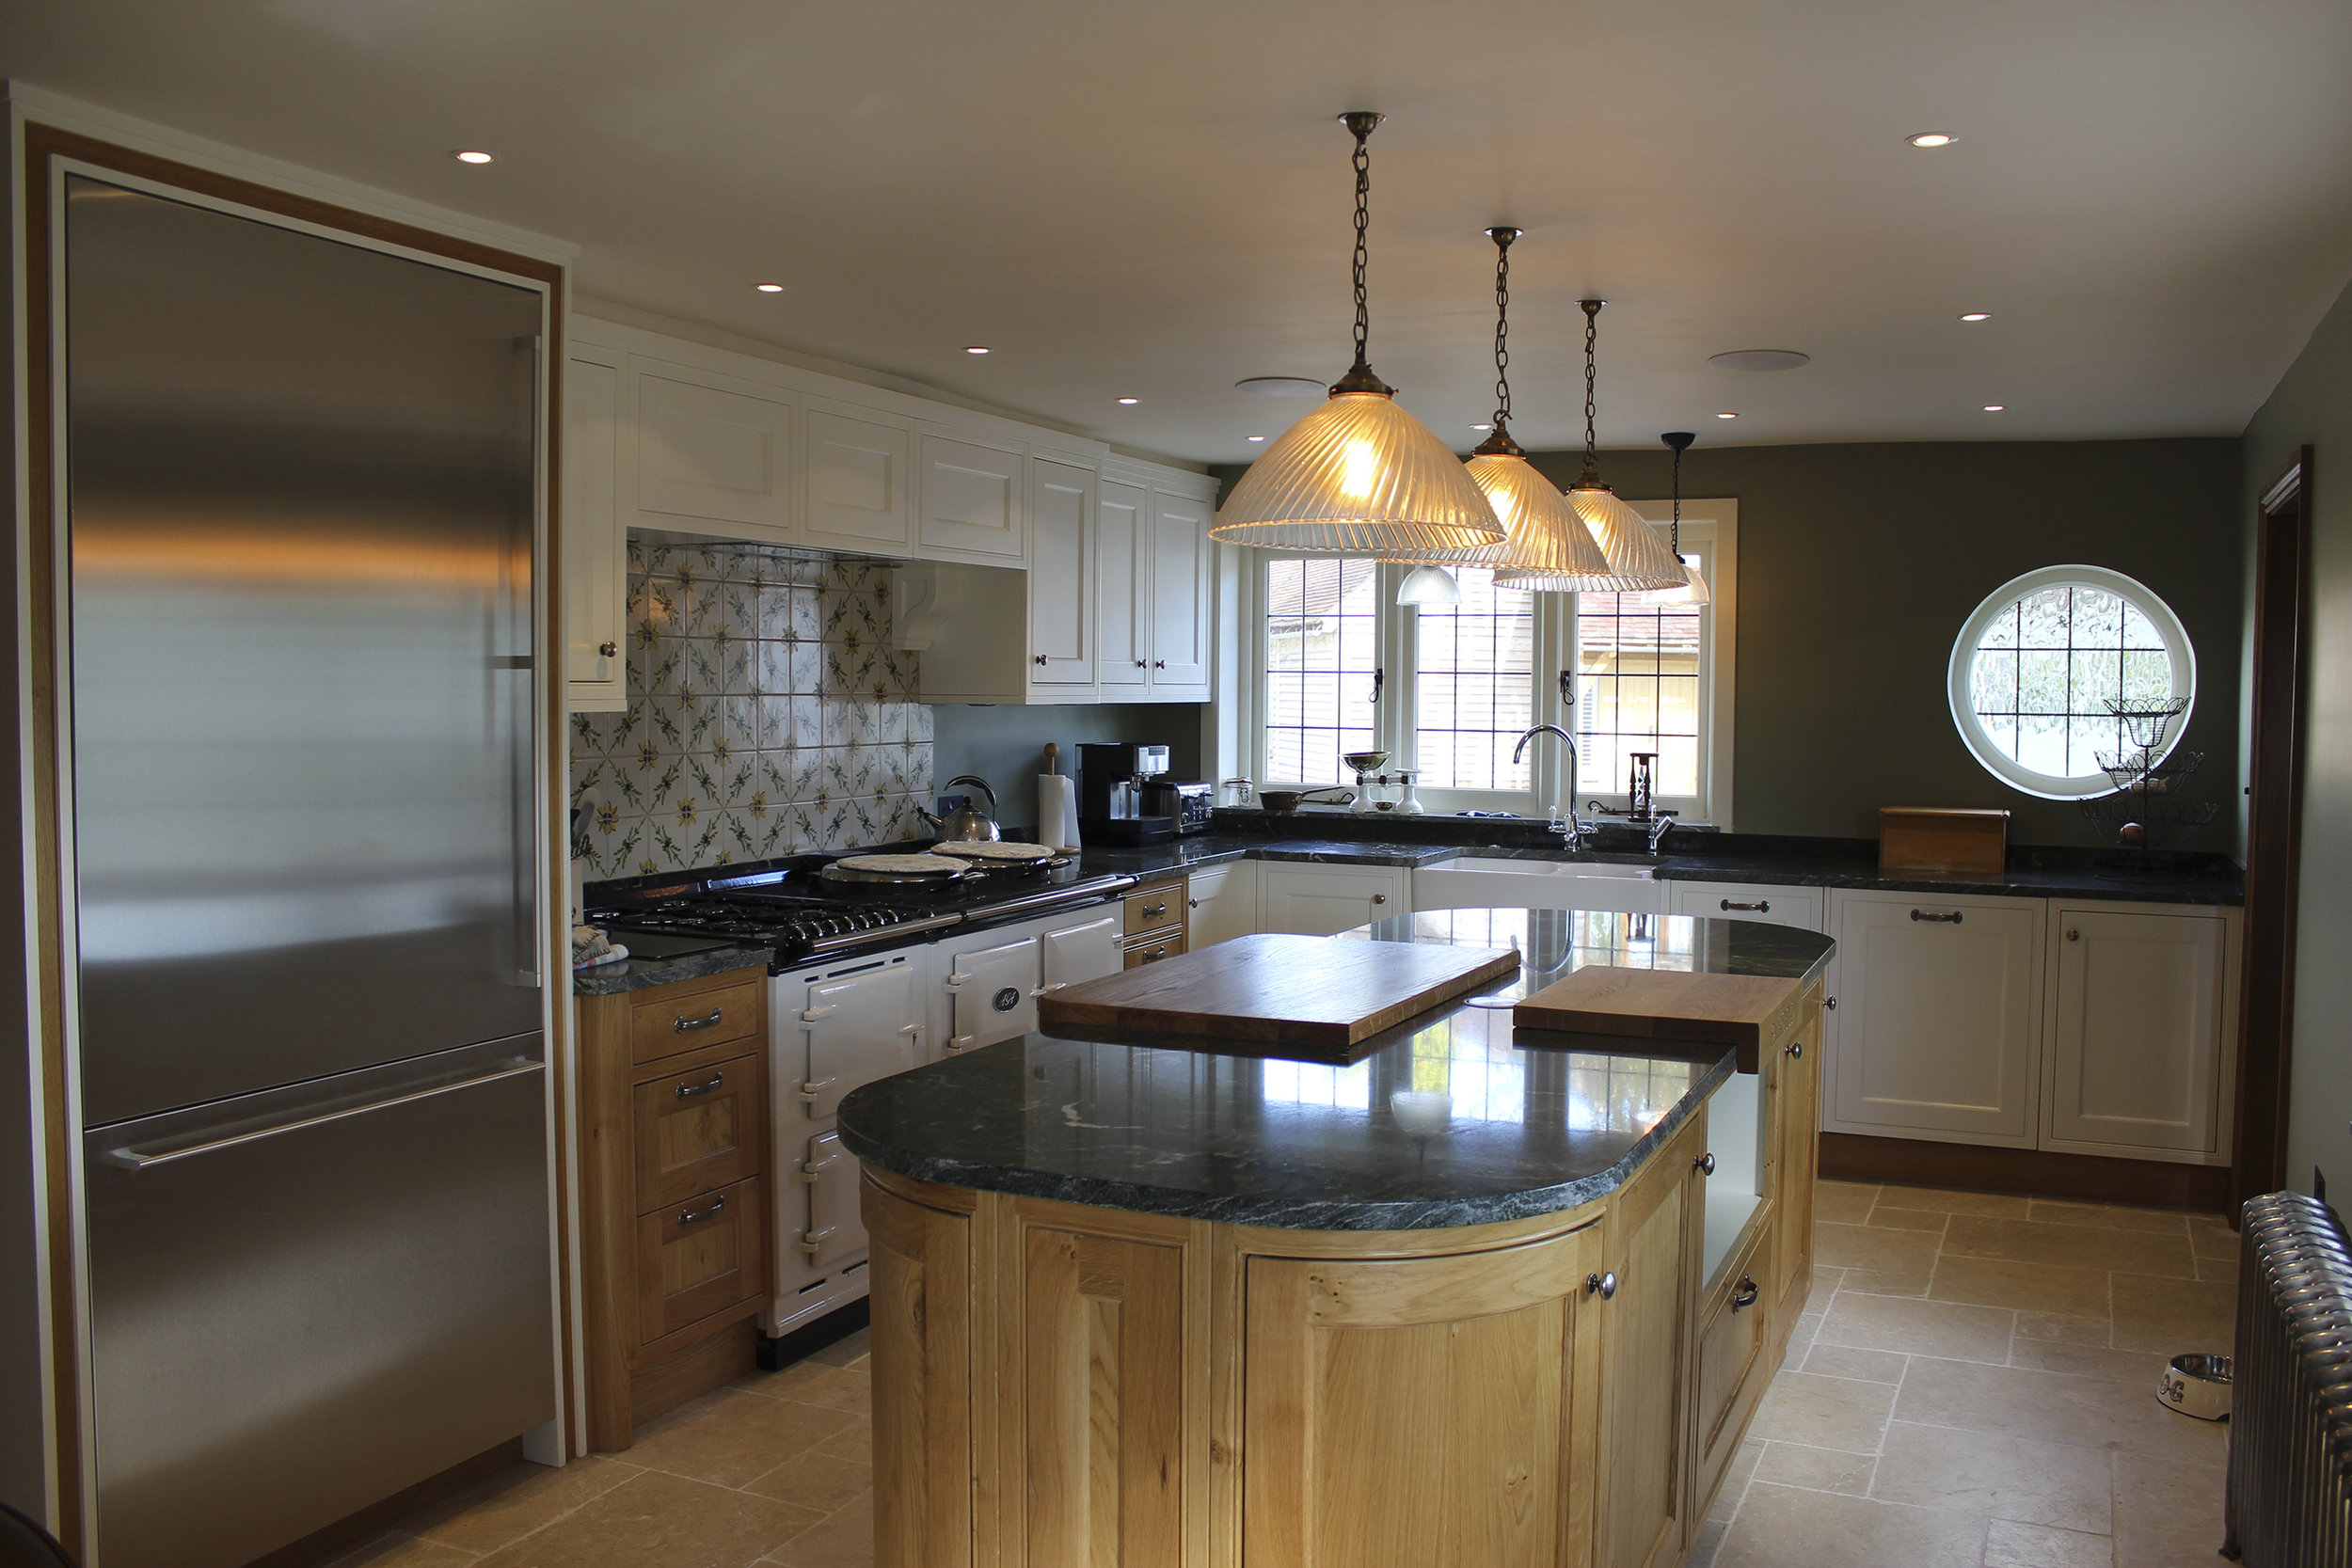 Kitchen design and build, including flooring, granite work surfaces and handmade cabinets units.